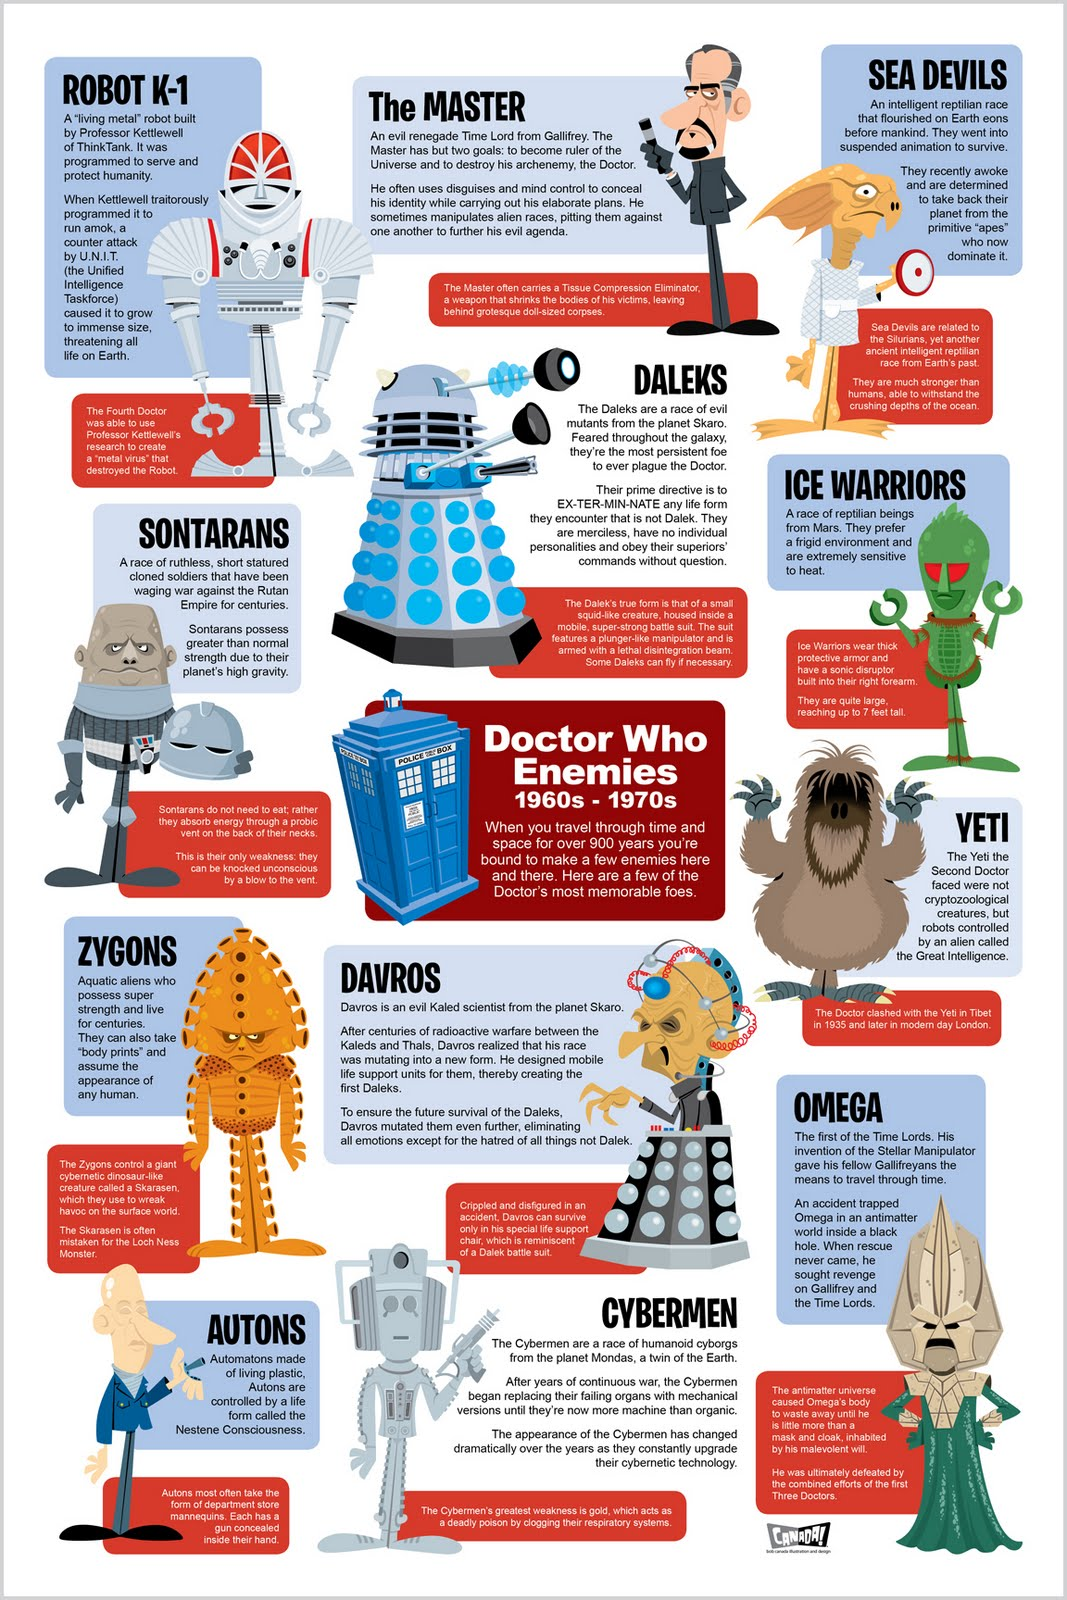 Bob Canada's BlogWorld: Doctor Who Enemies Infographic